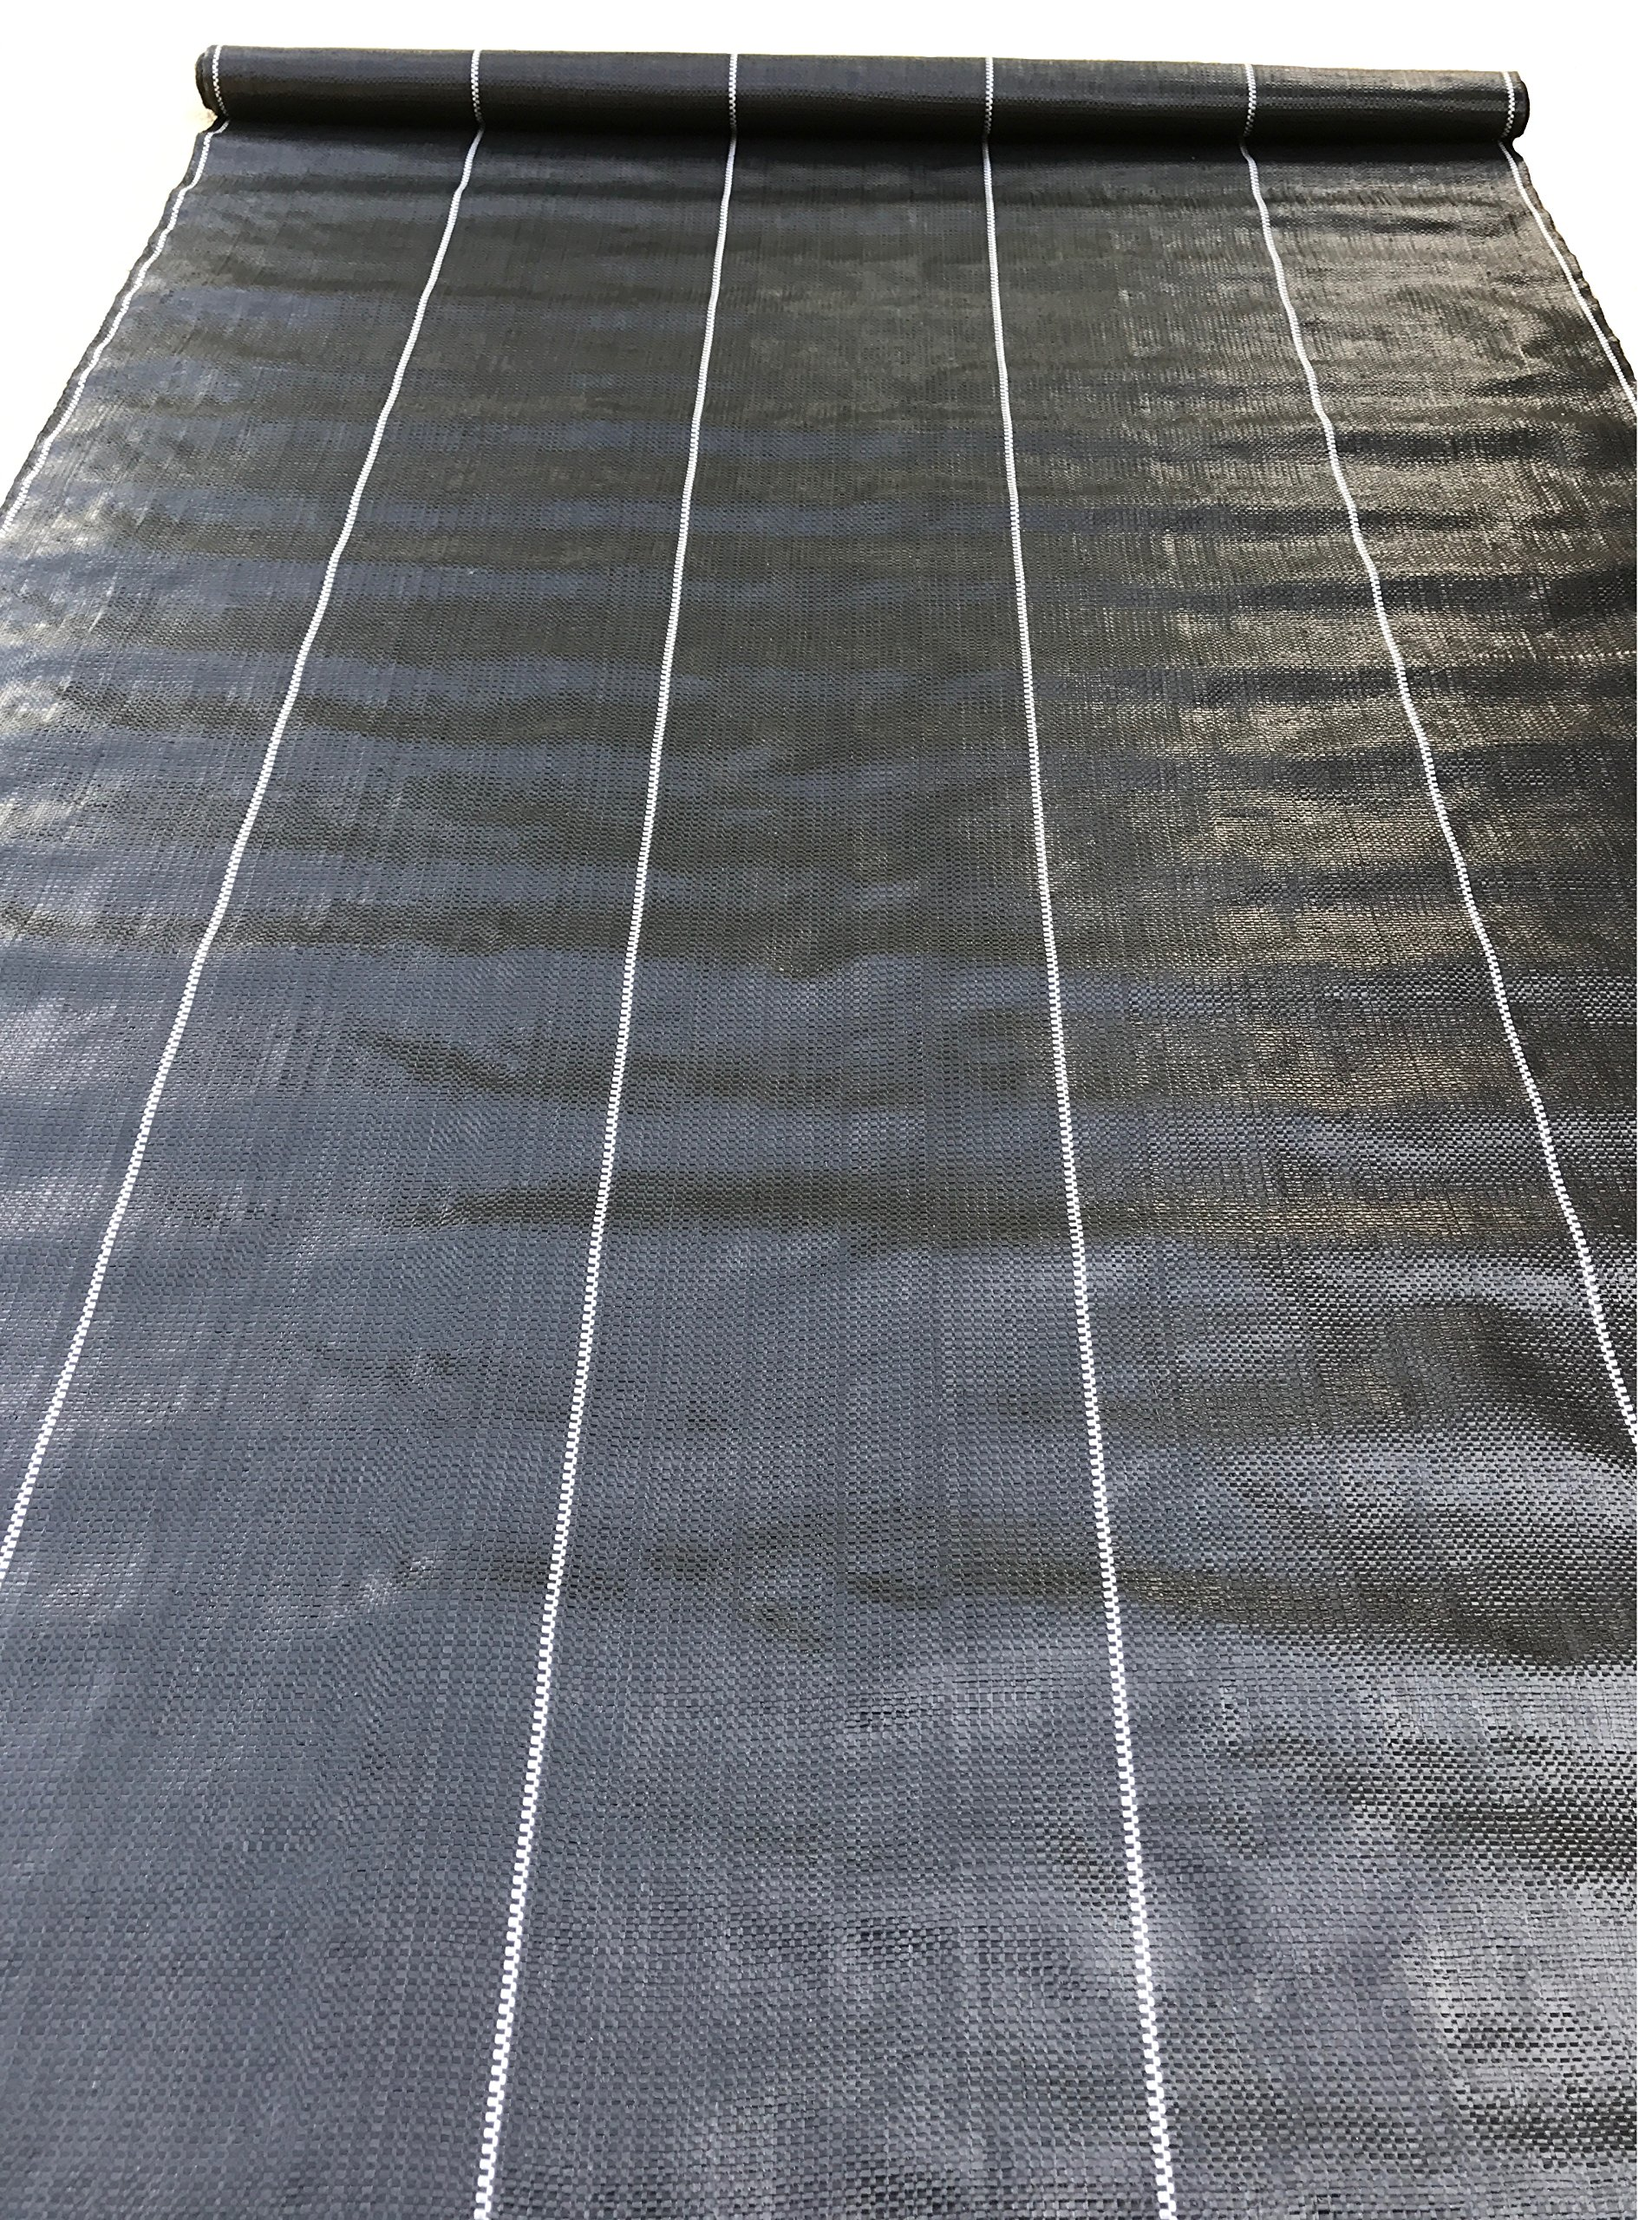 Weed Barrier Landscape Fabric Woven Weed Block UV Resistant Professional Grade 3.24 oz (4 x 300 ft, Black)